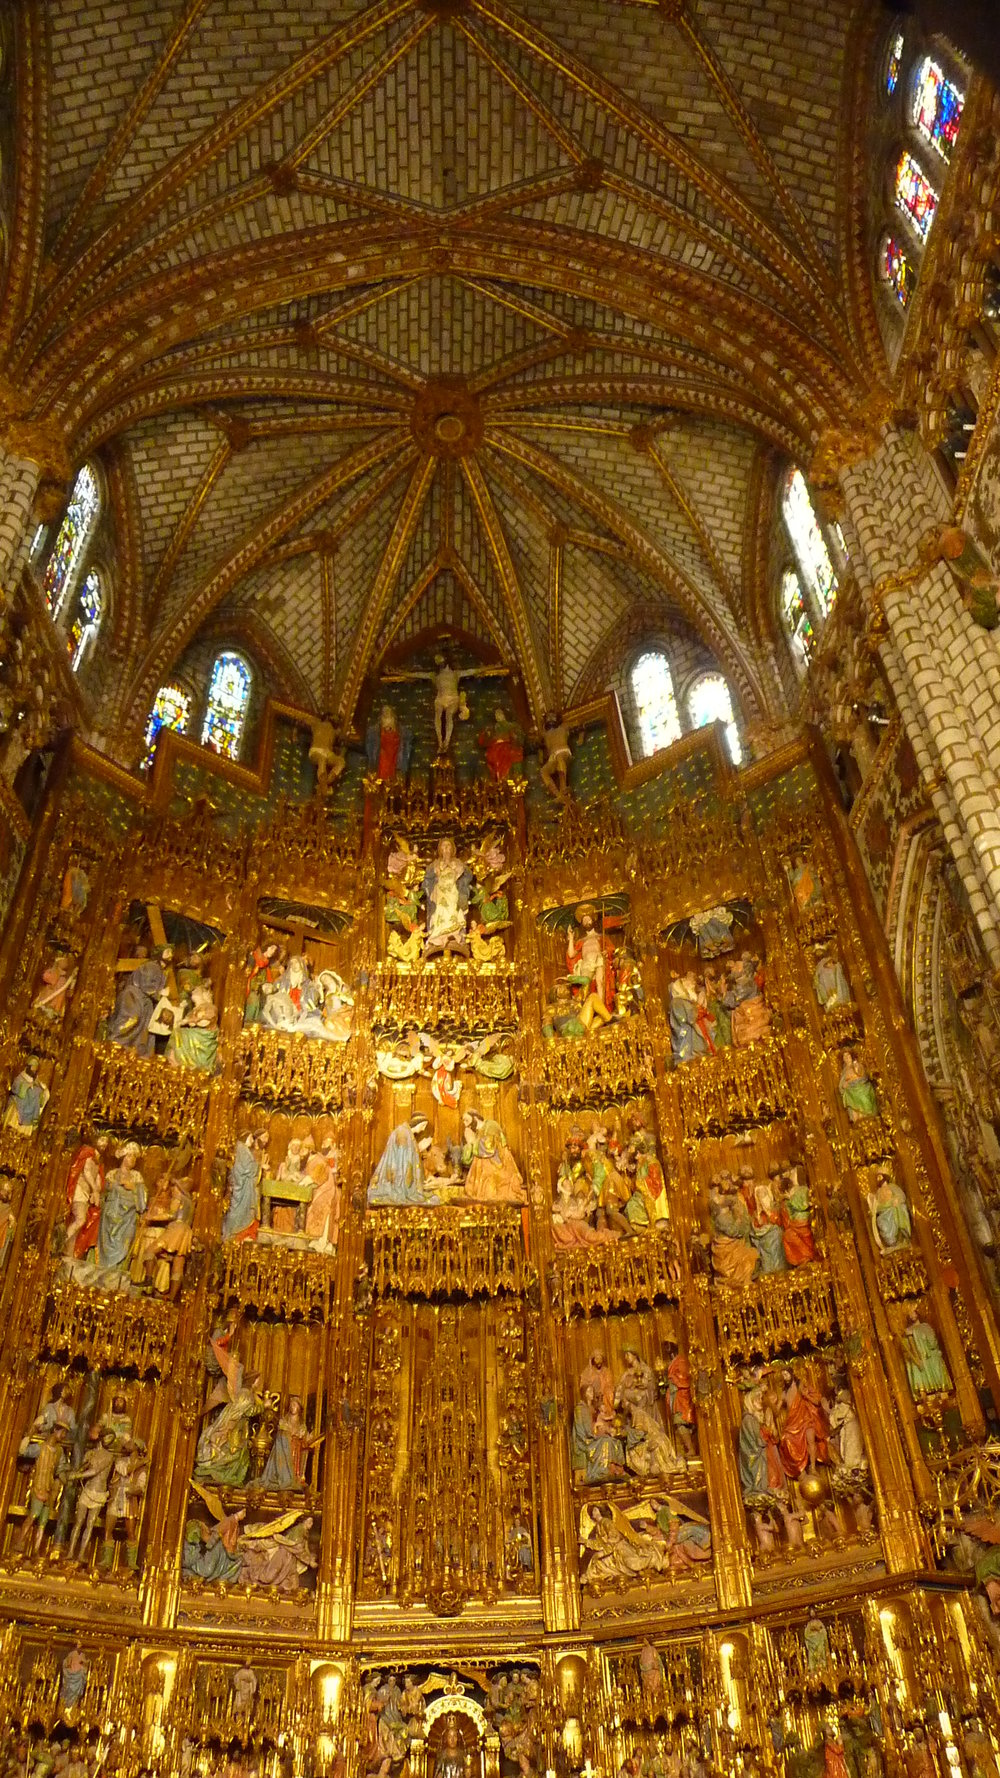 High Altar of Toledo's cathedral